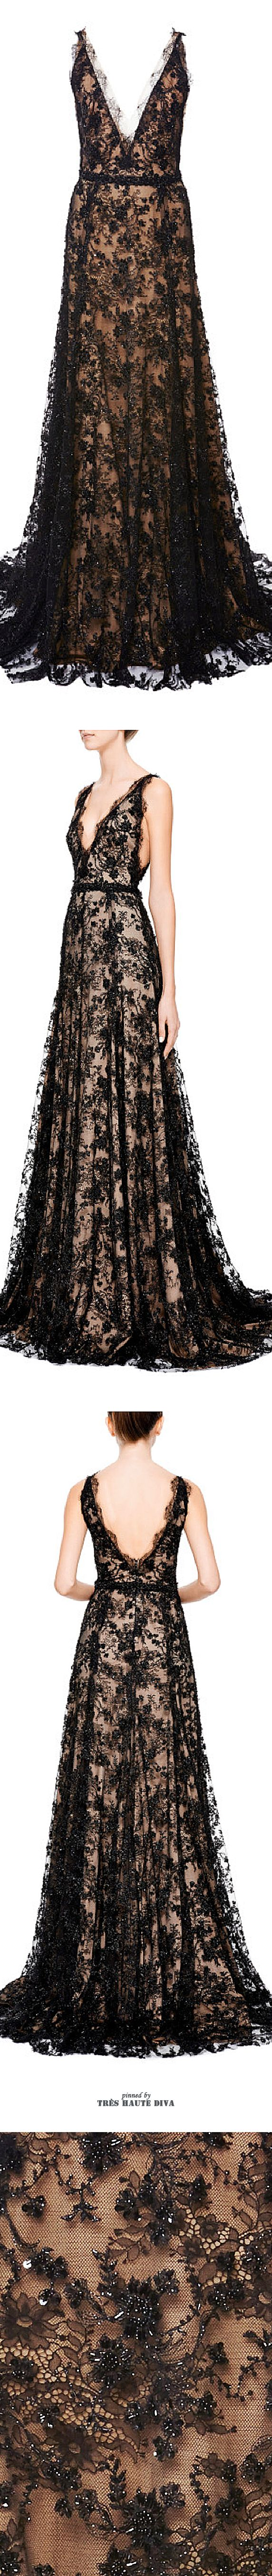 Marchesa Embroidered Chantilly Lace Gown S/S 2015